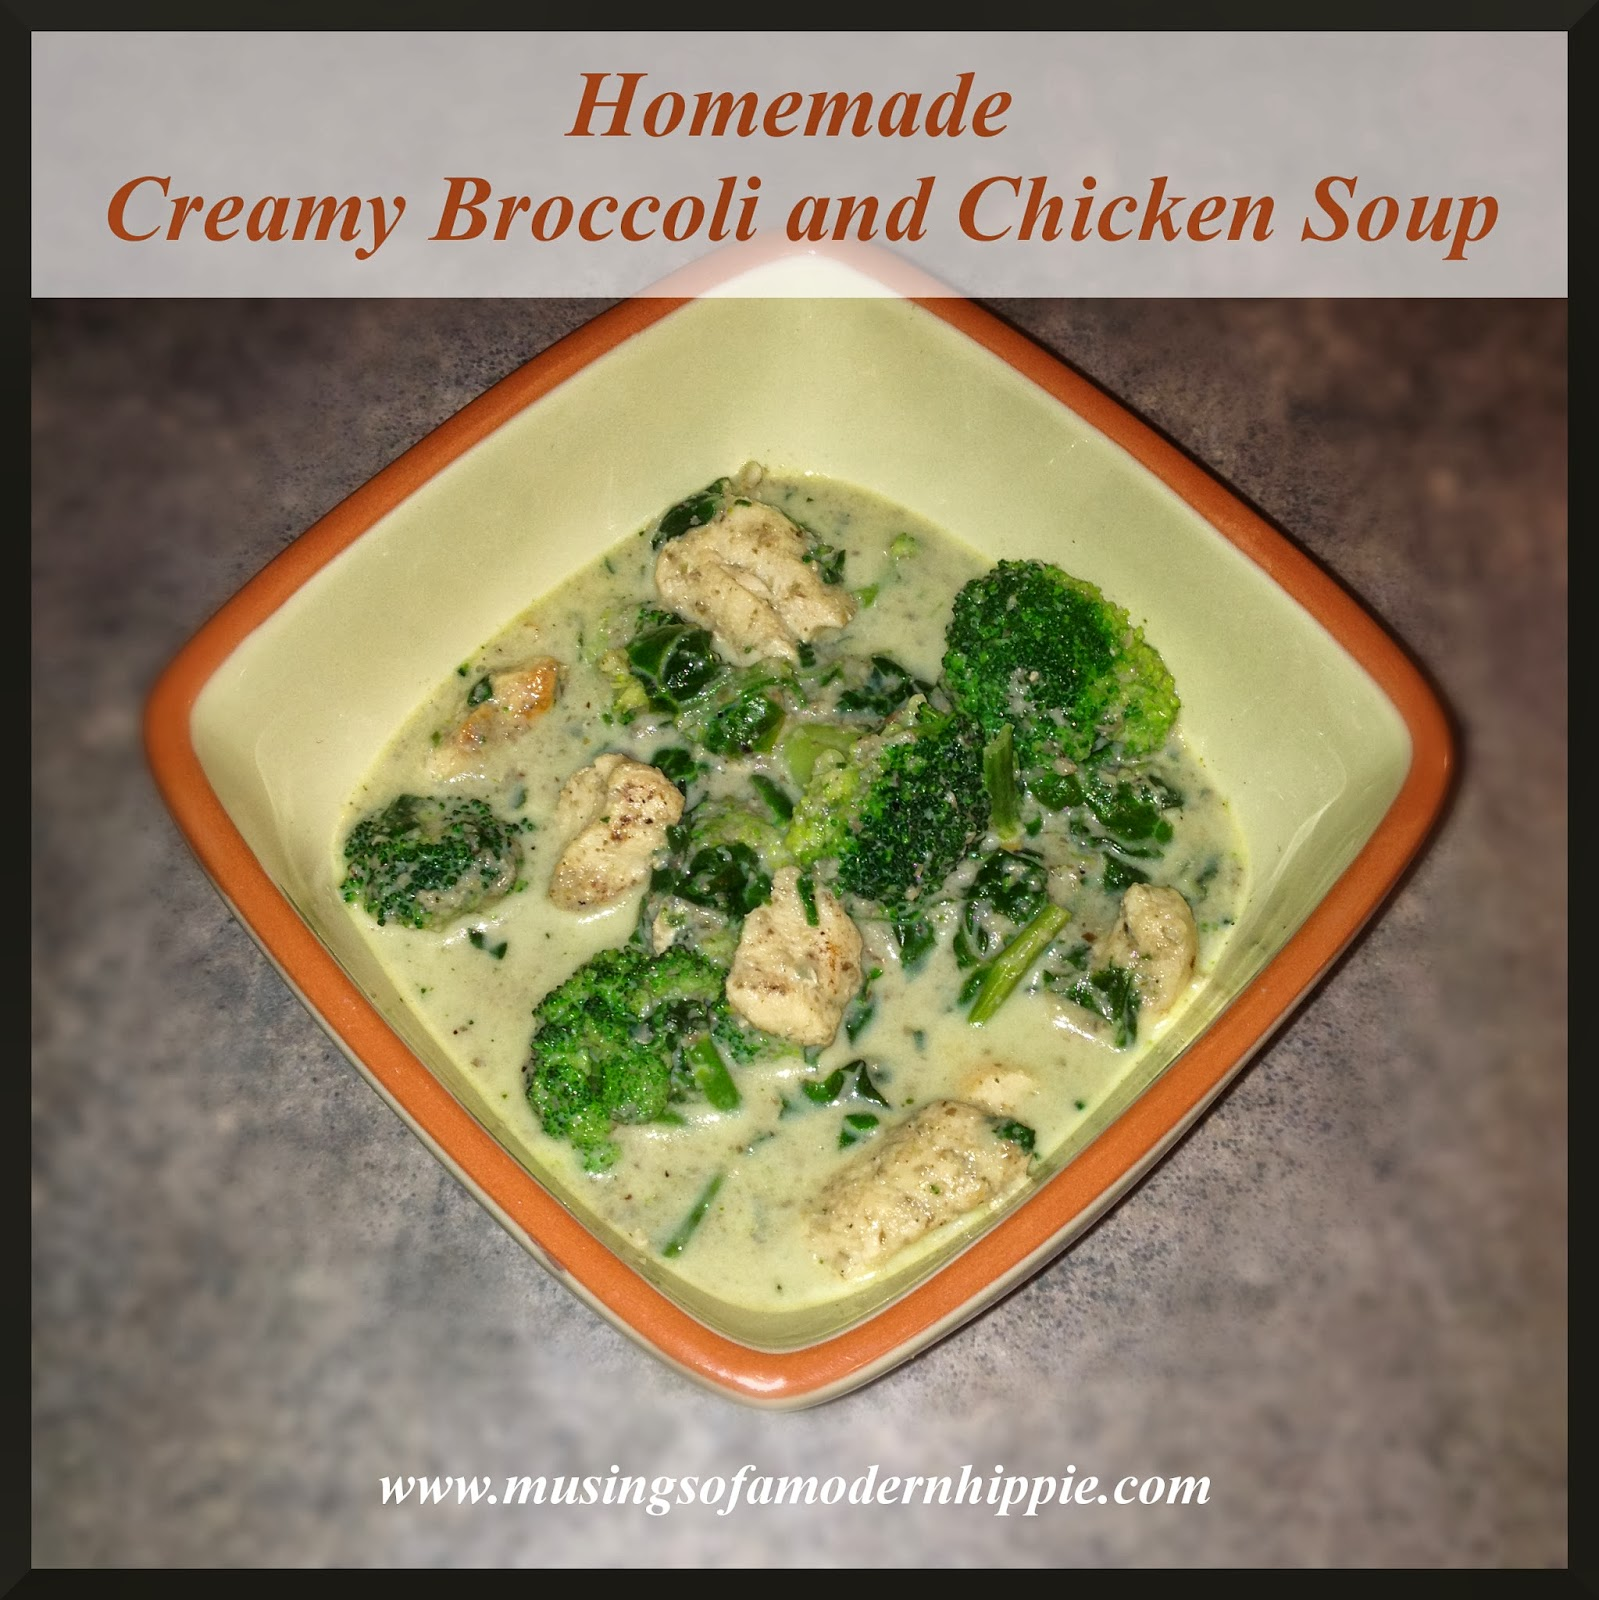 Creamy Broccoli and Chicken Soup | Musings of a Modern Hippie